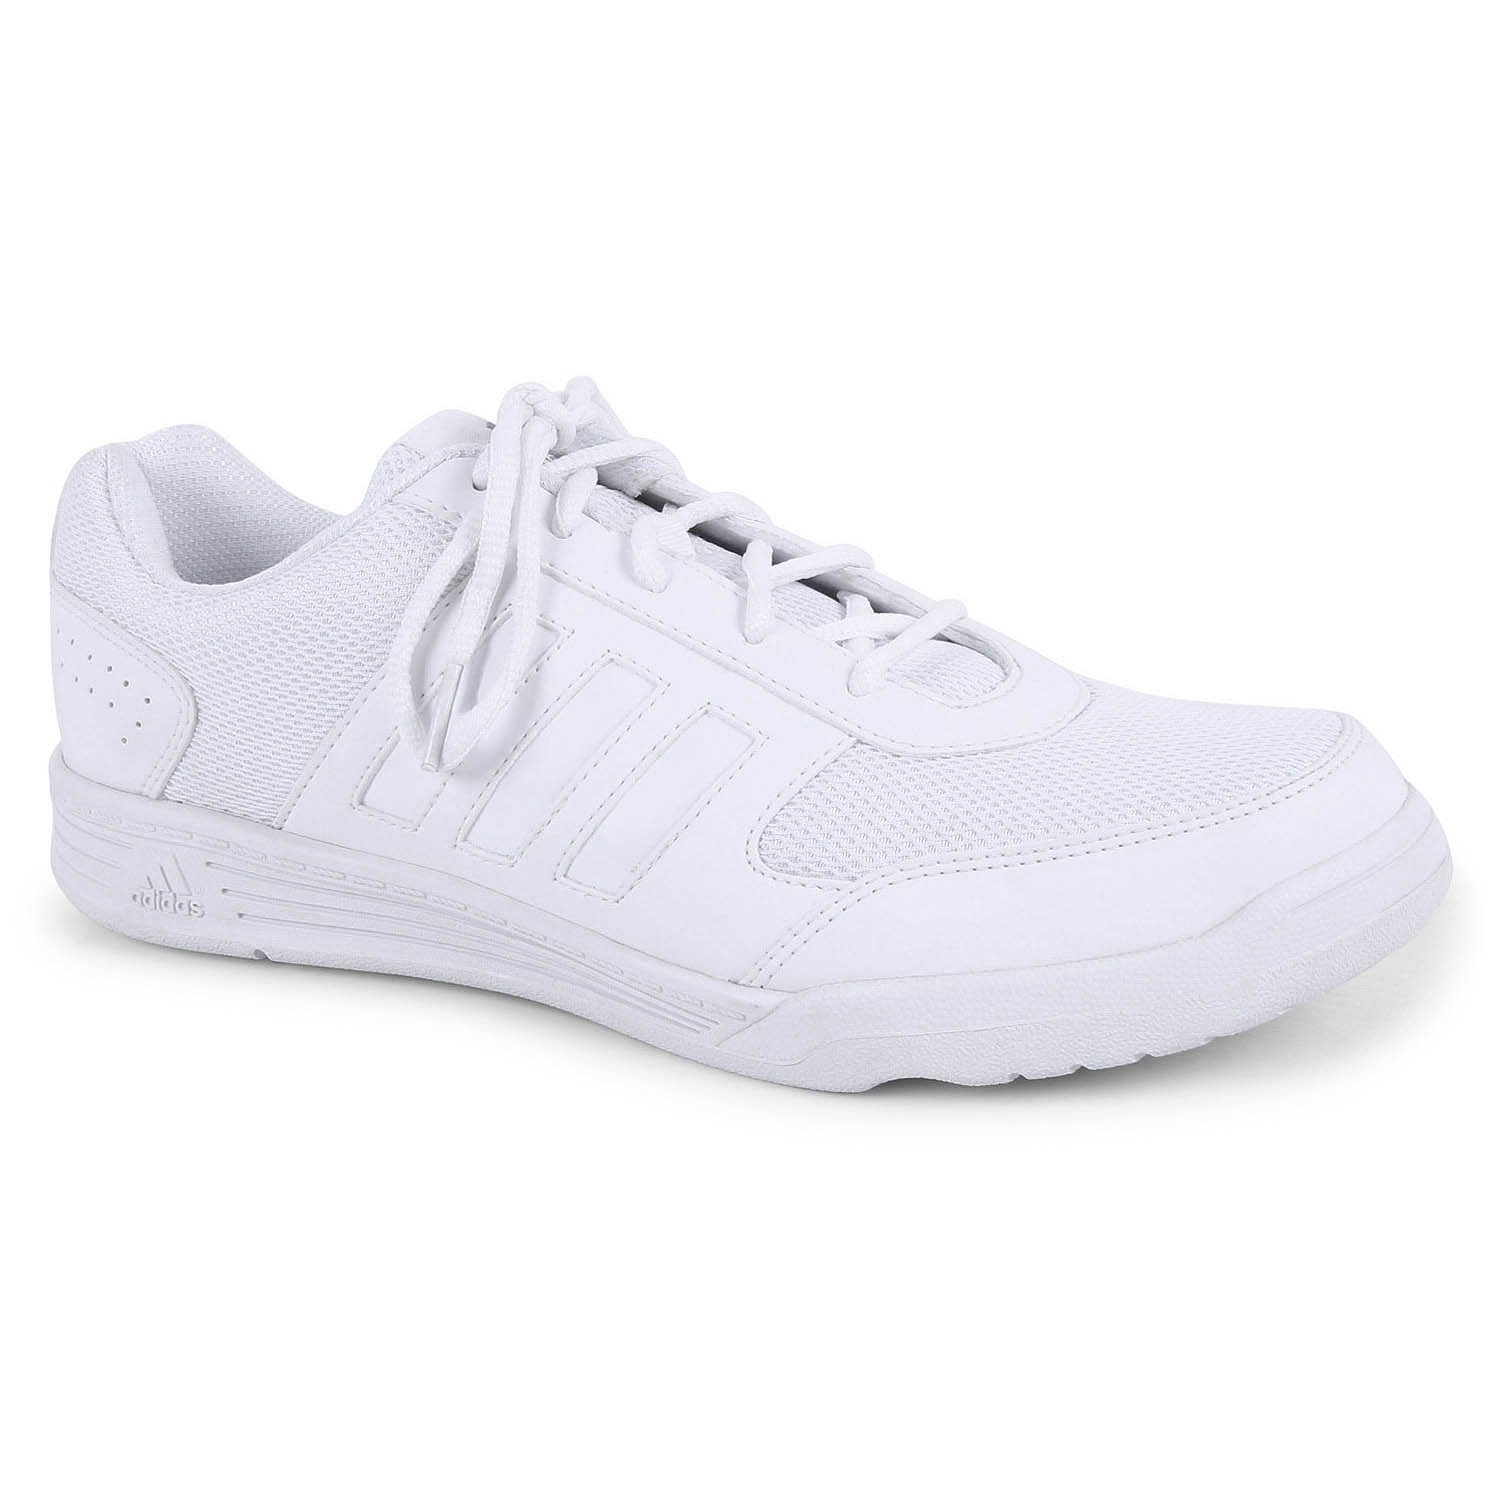 55917a777285 Adidas White School Shoes - Sports Shoes Kids Range (3 to 12 Years ...